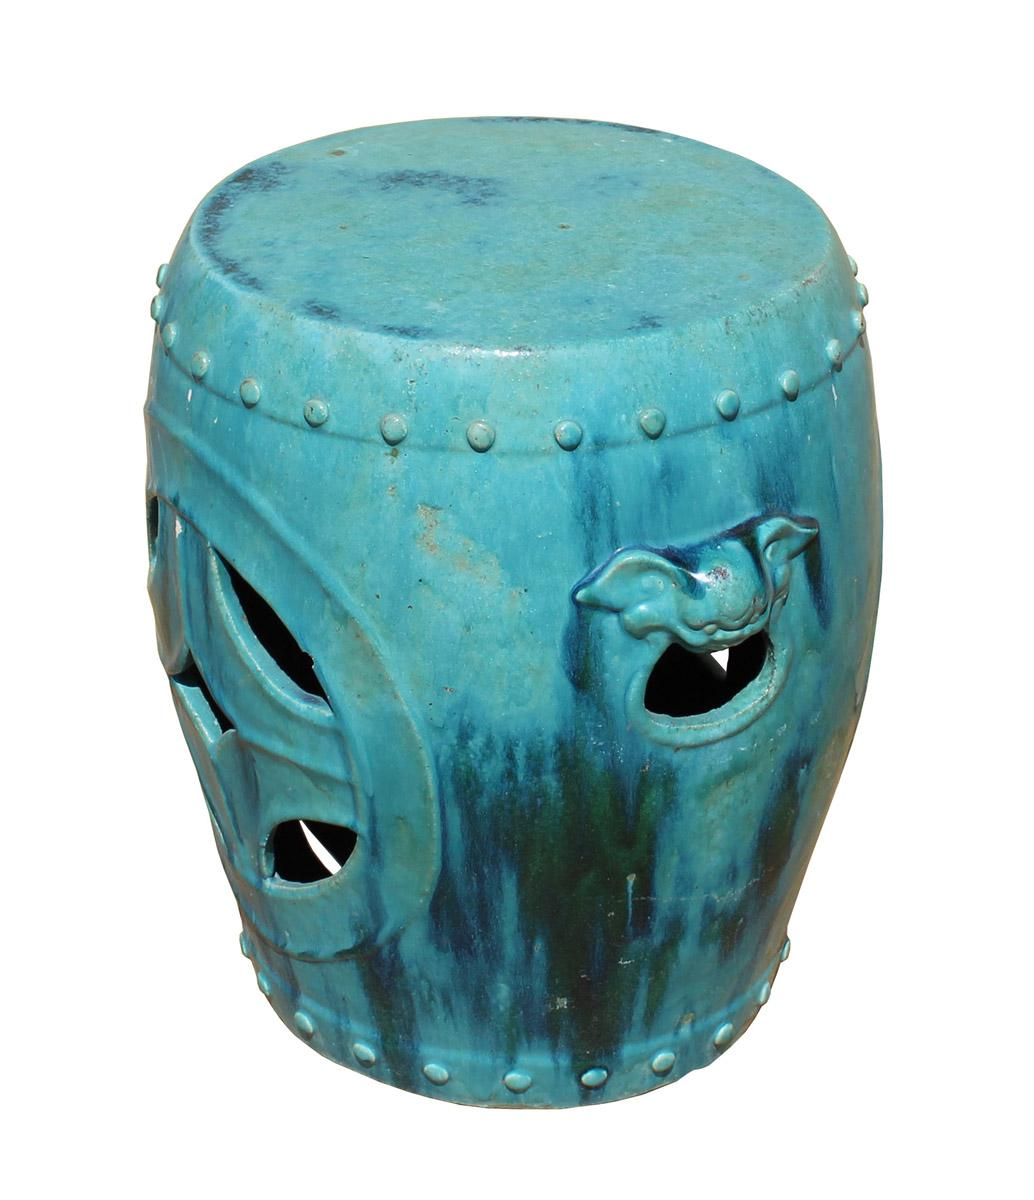 Chinese Distressed Turquoise Green Round Clay Ceramic Garden Stool Cs2842  For Sale In San Francisco